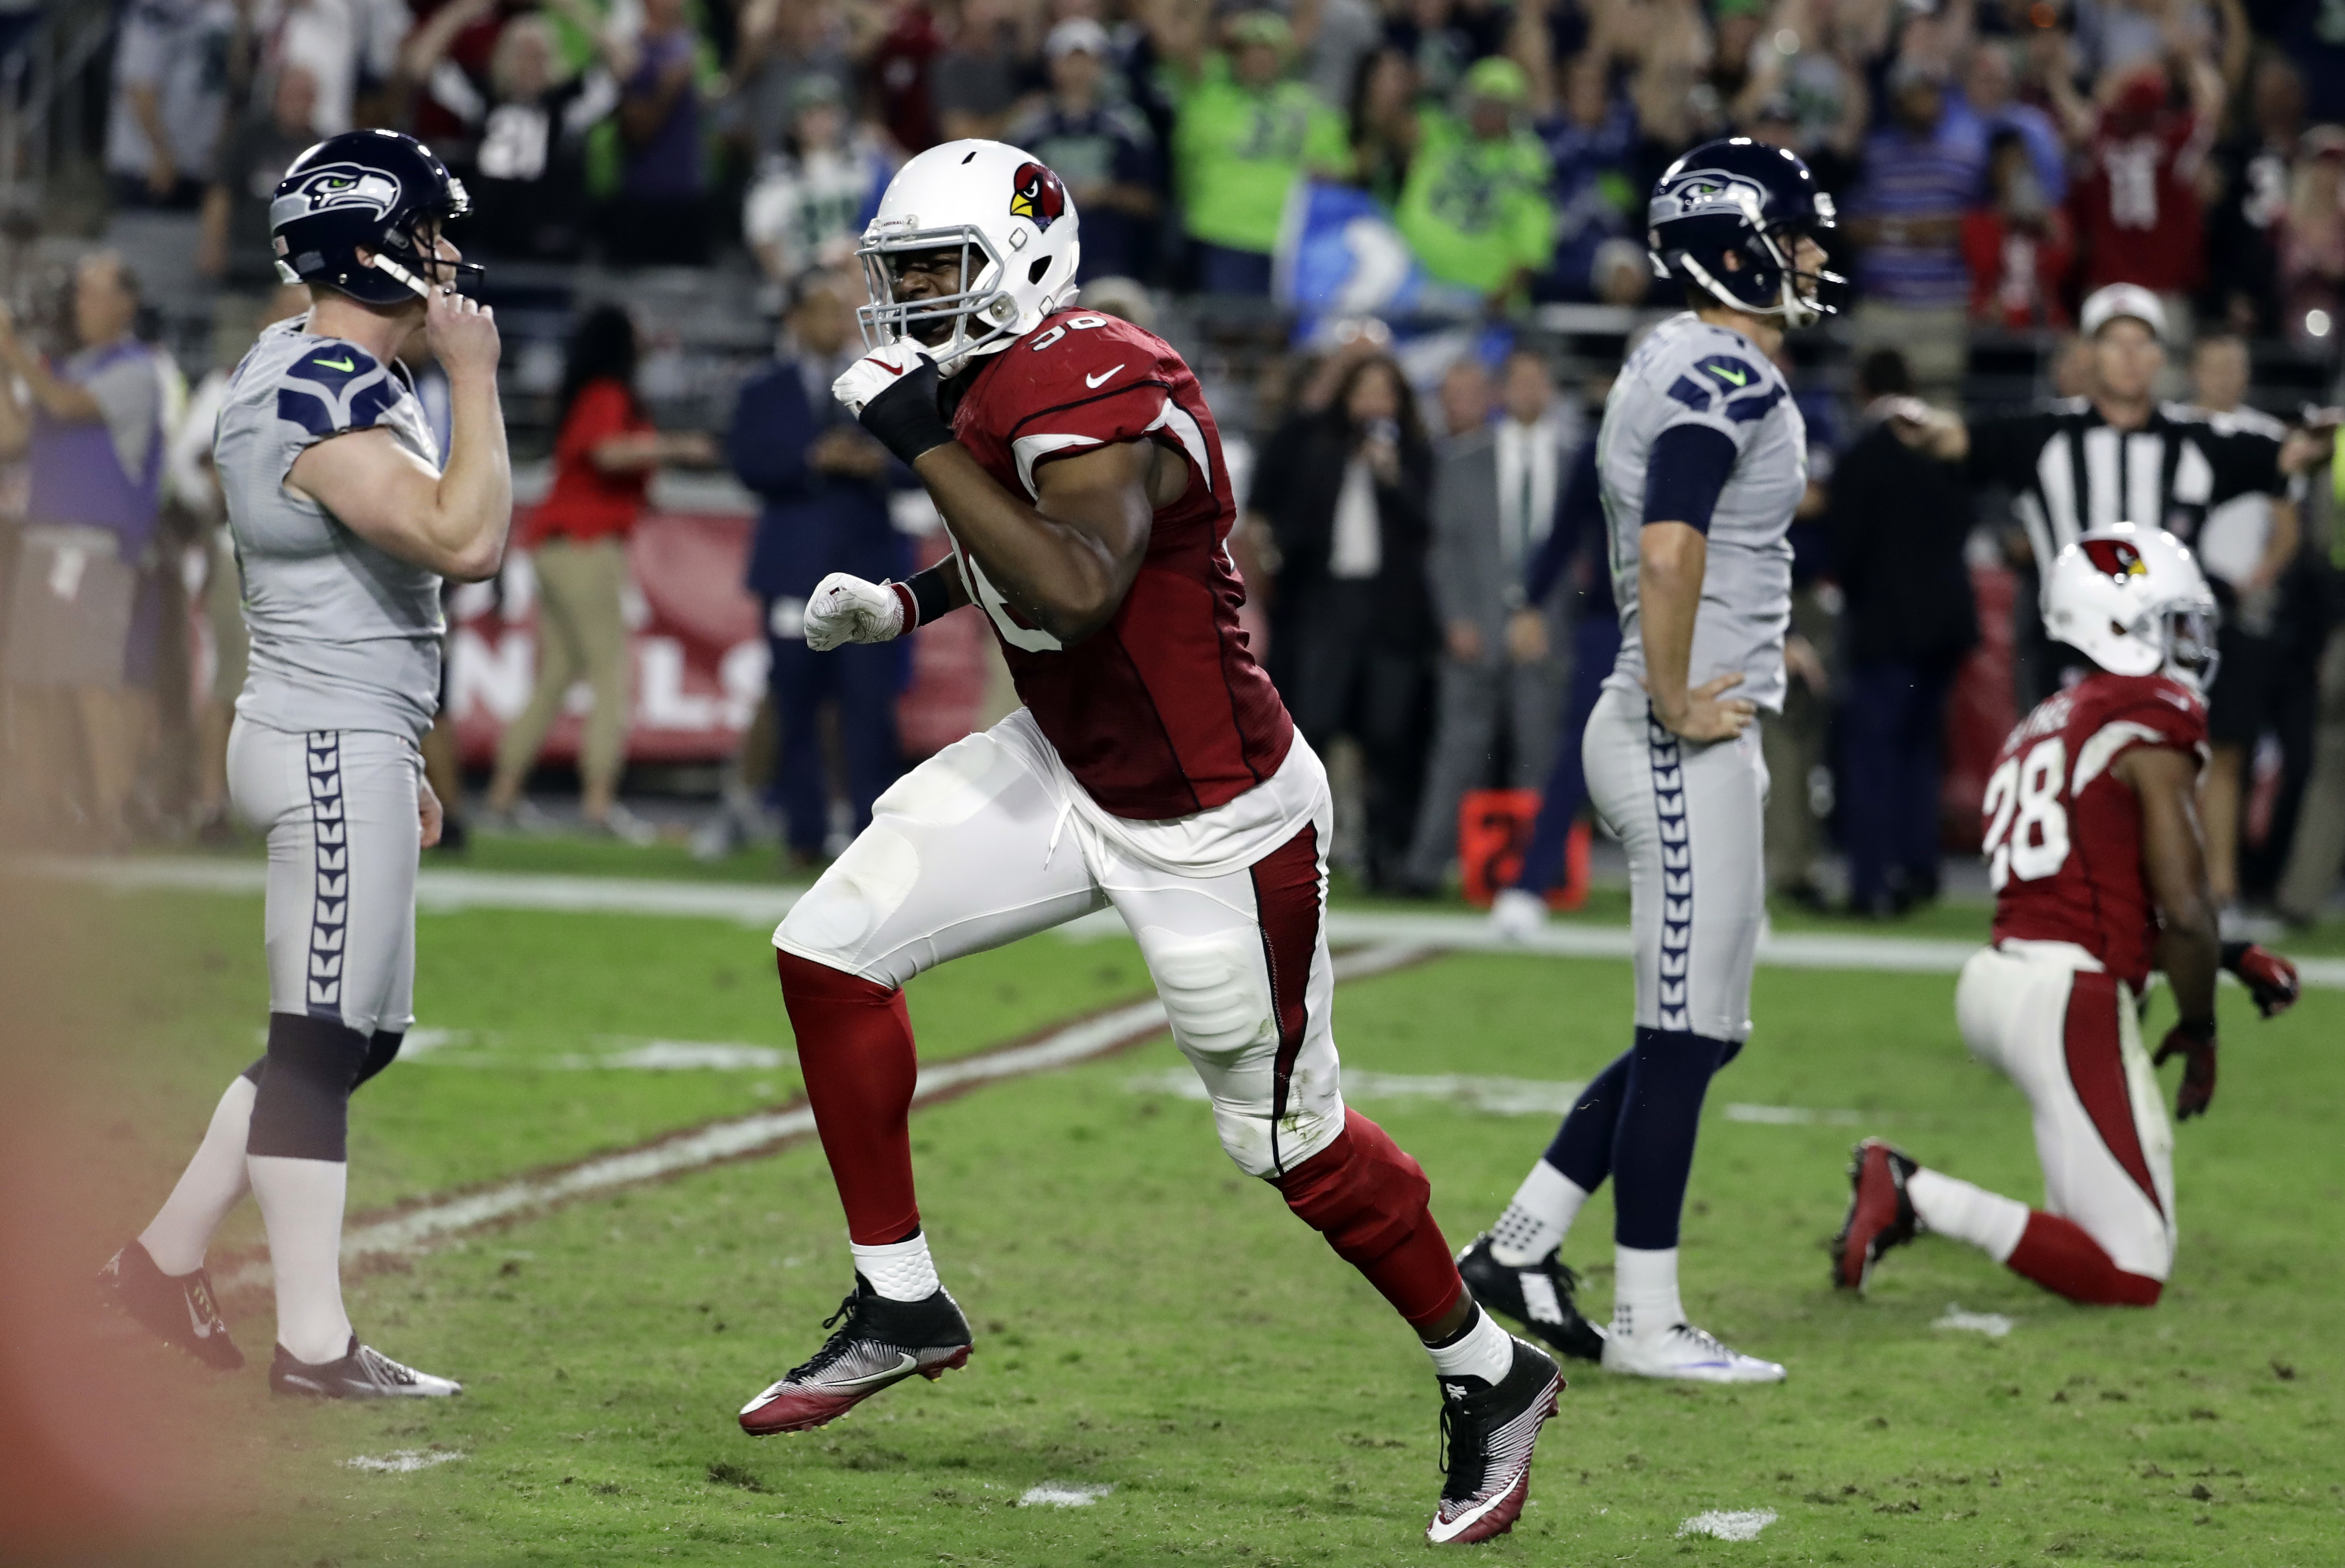 Arizona Cardinals linebacker Kareem Martin, center, reacts to Seattle Seahawks kicker Stephen Hauschka's, left, missed game-winning field goal attempt during overtime an NFL football game against the Arizona Cardinals, Sunday, Oct. 23, 2016, in Glendale,